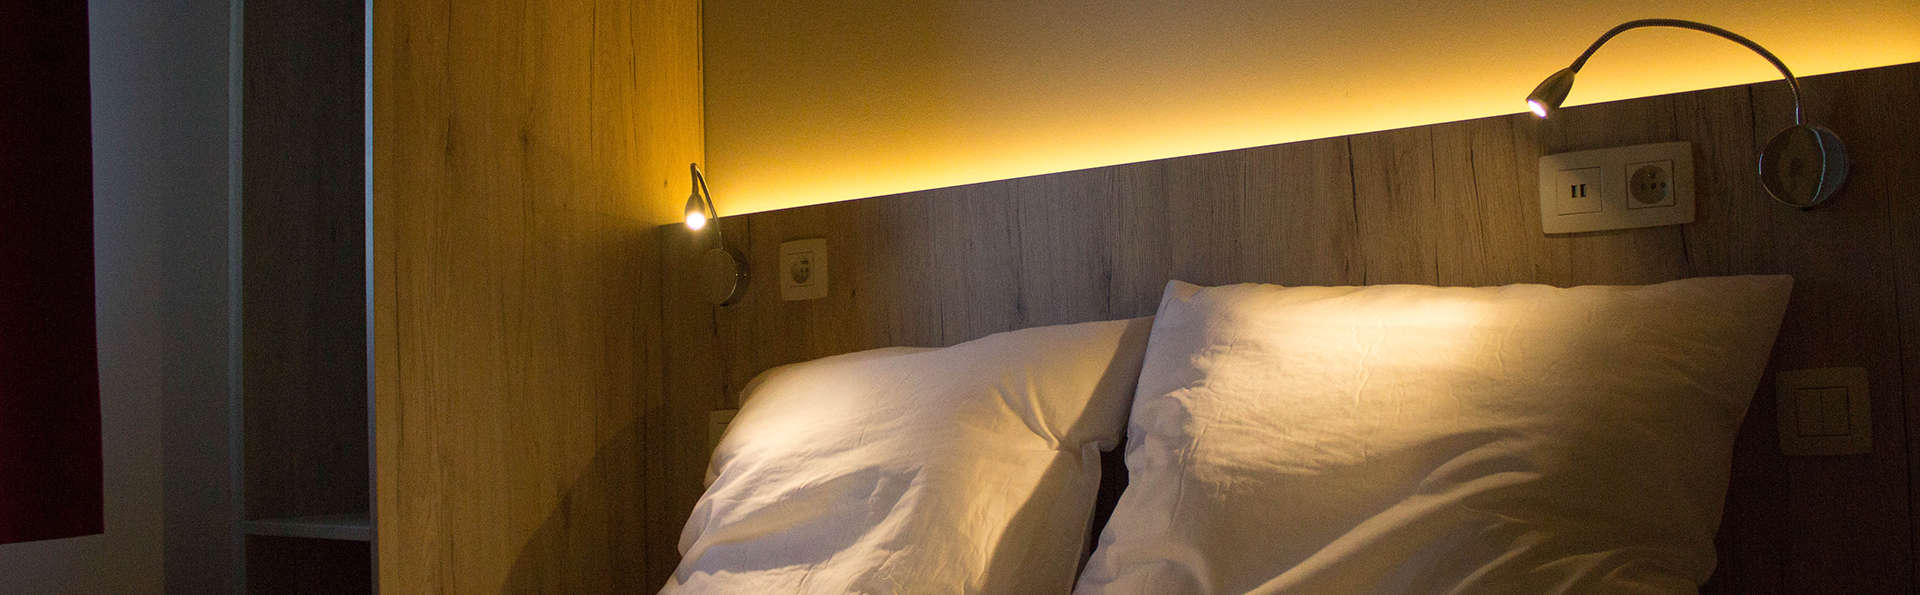 Holiday Suites Zeebrugge - EDIT_NEW_room2.jpg